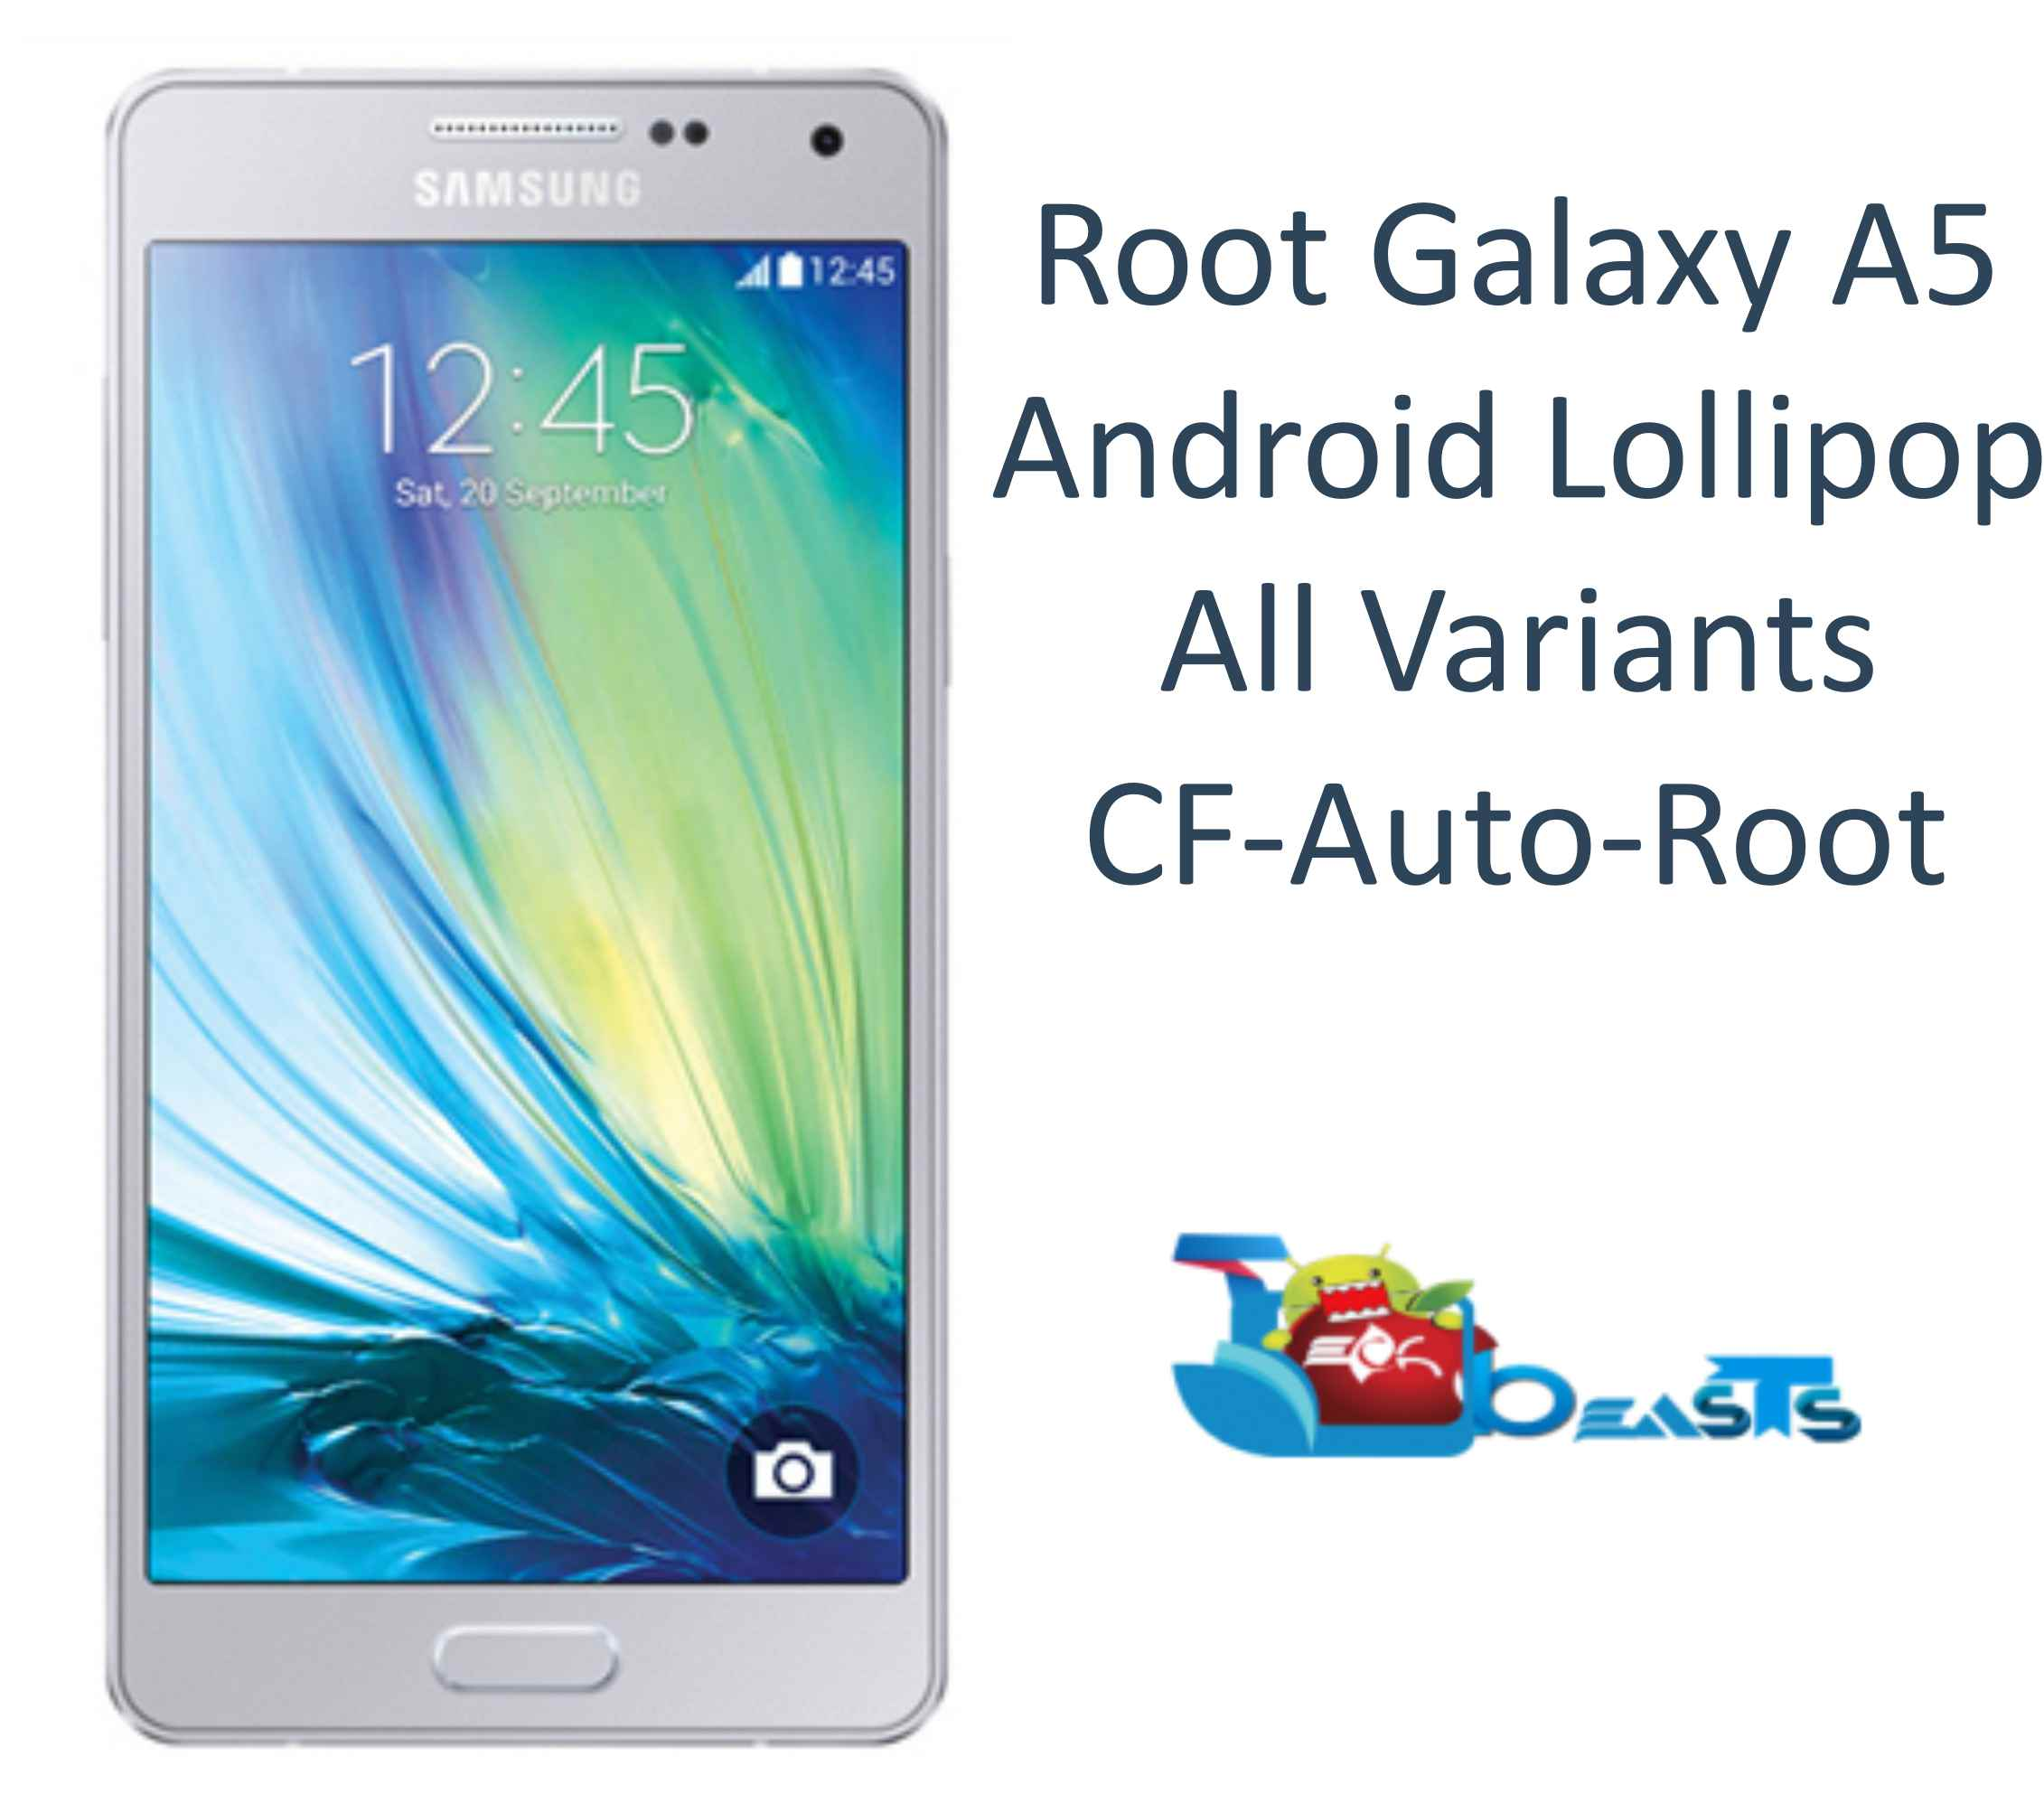 How To Root Samsung Galaxy A5 on Android Lollipop using CF Auto Root